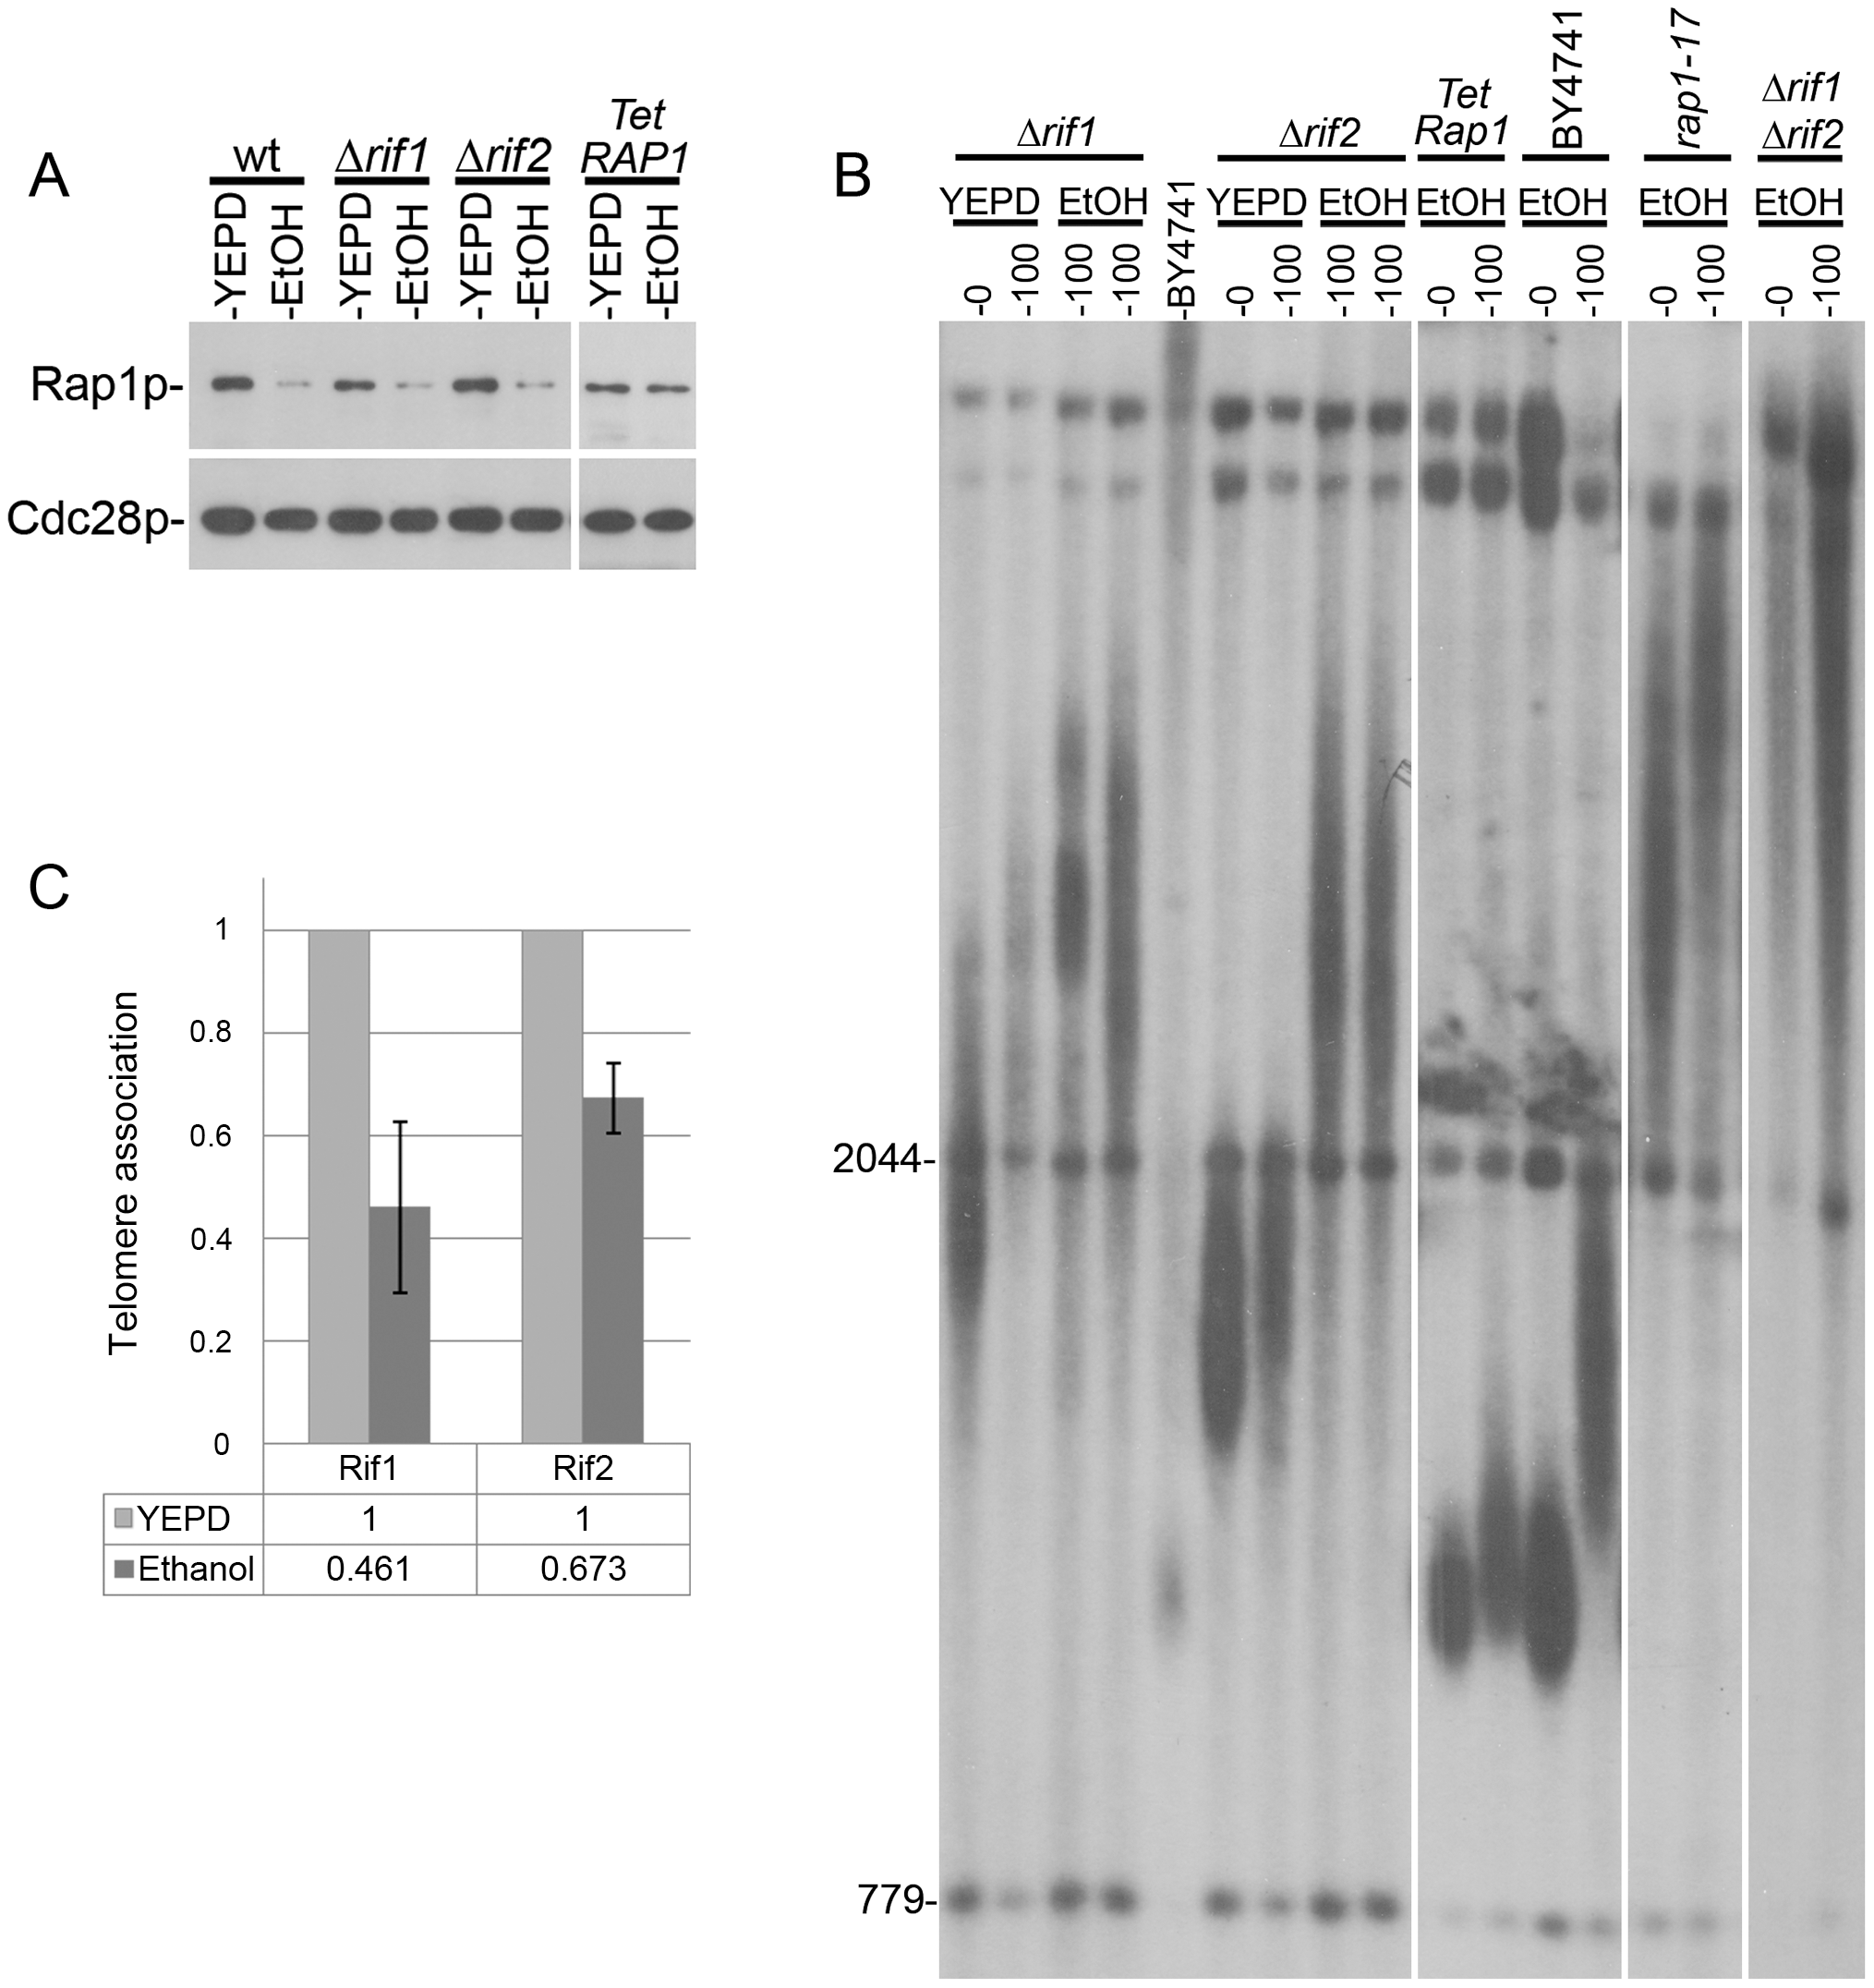 Telomere elongation of different mutants grown in the presence of ethanol.